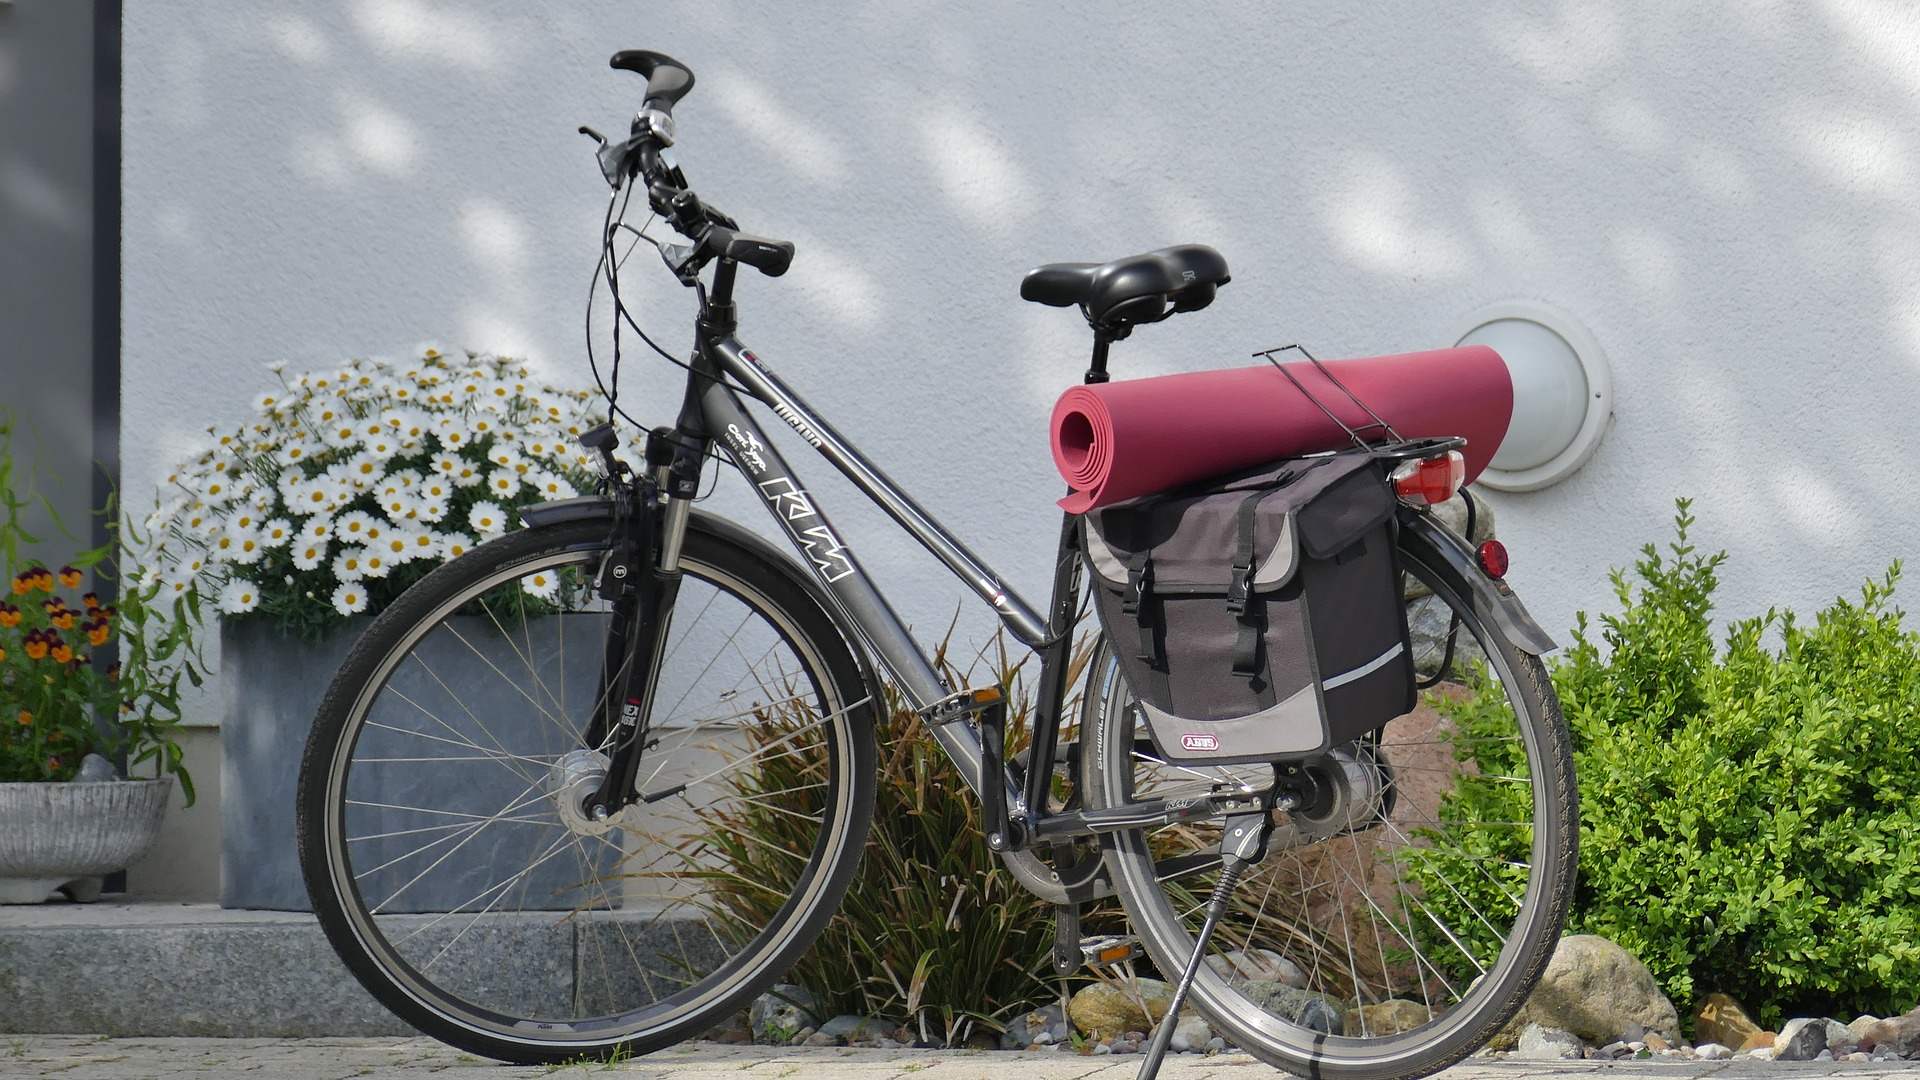 Camino Santiago Bike The Camino De Santiago On Two Wheels How To Transport Your Bicycle